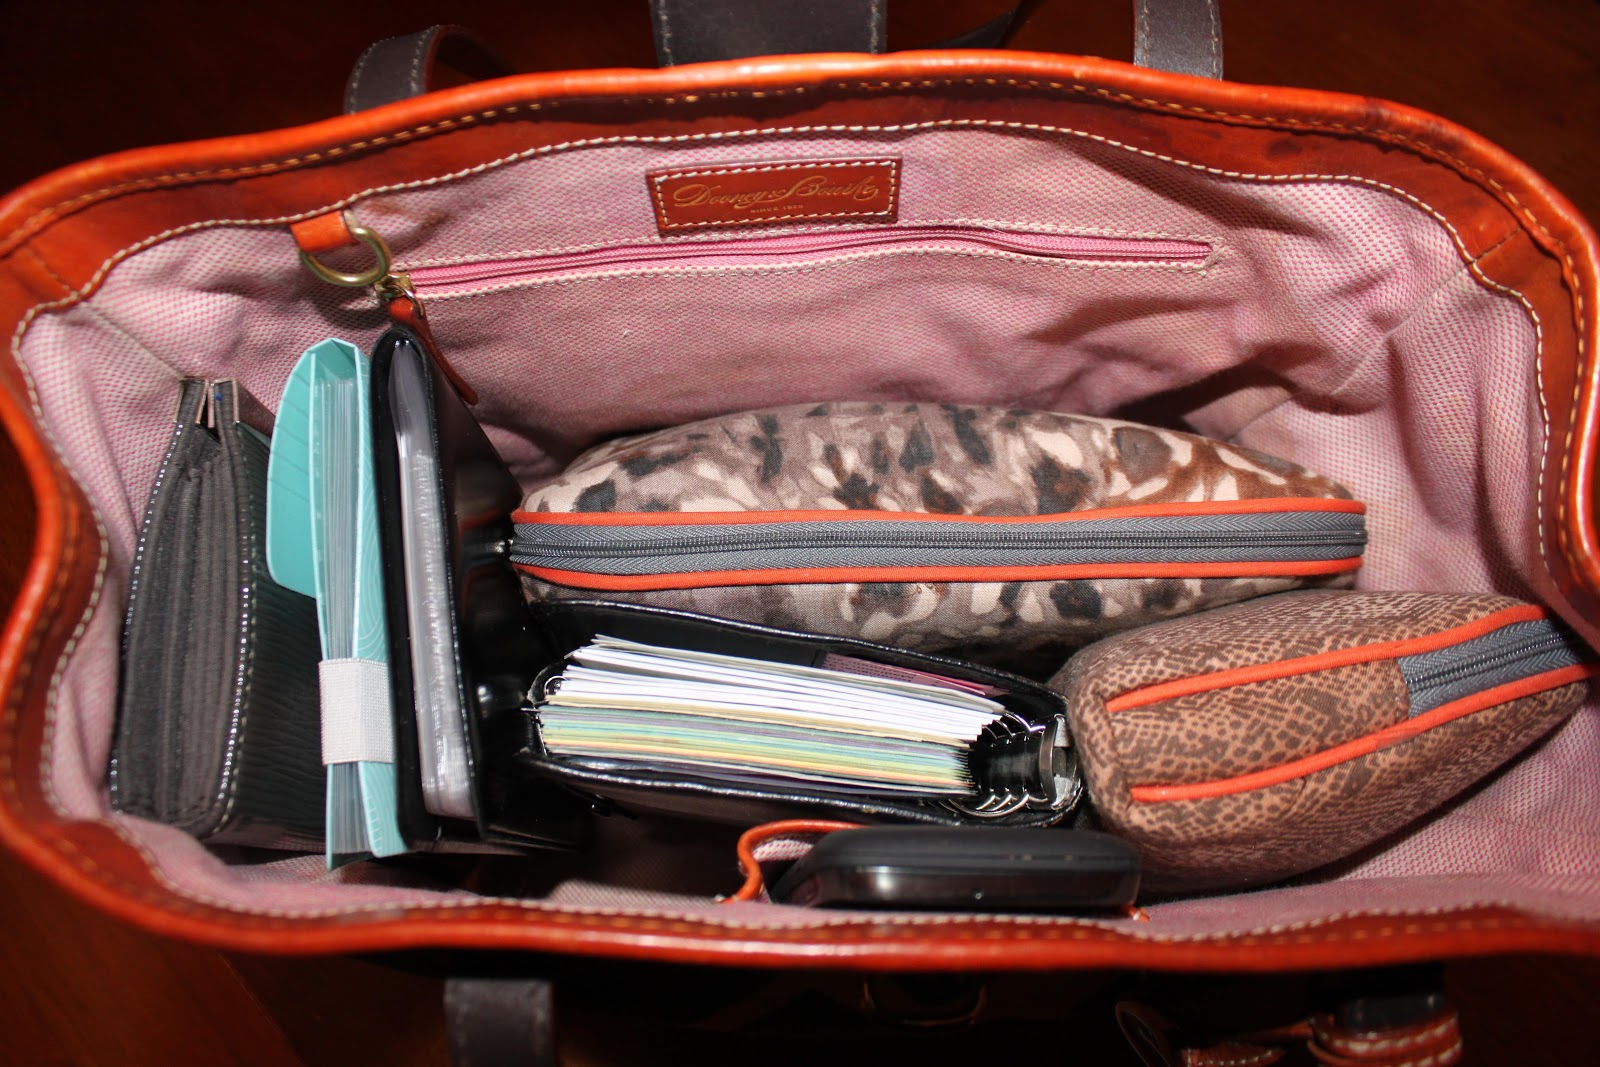 How to Keep Your Purse Organized